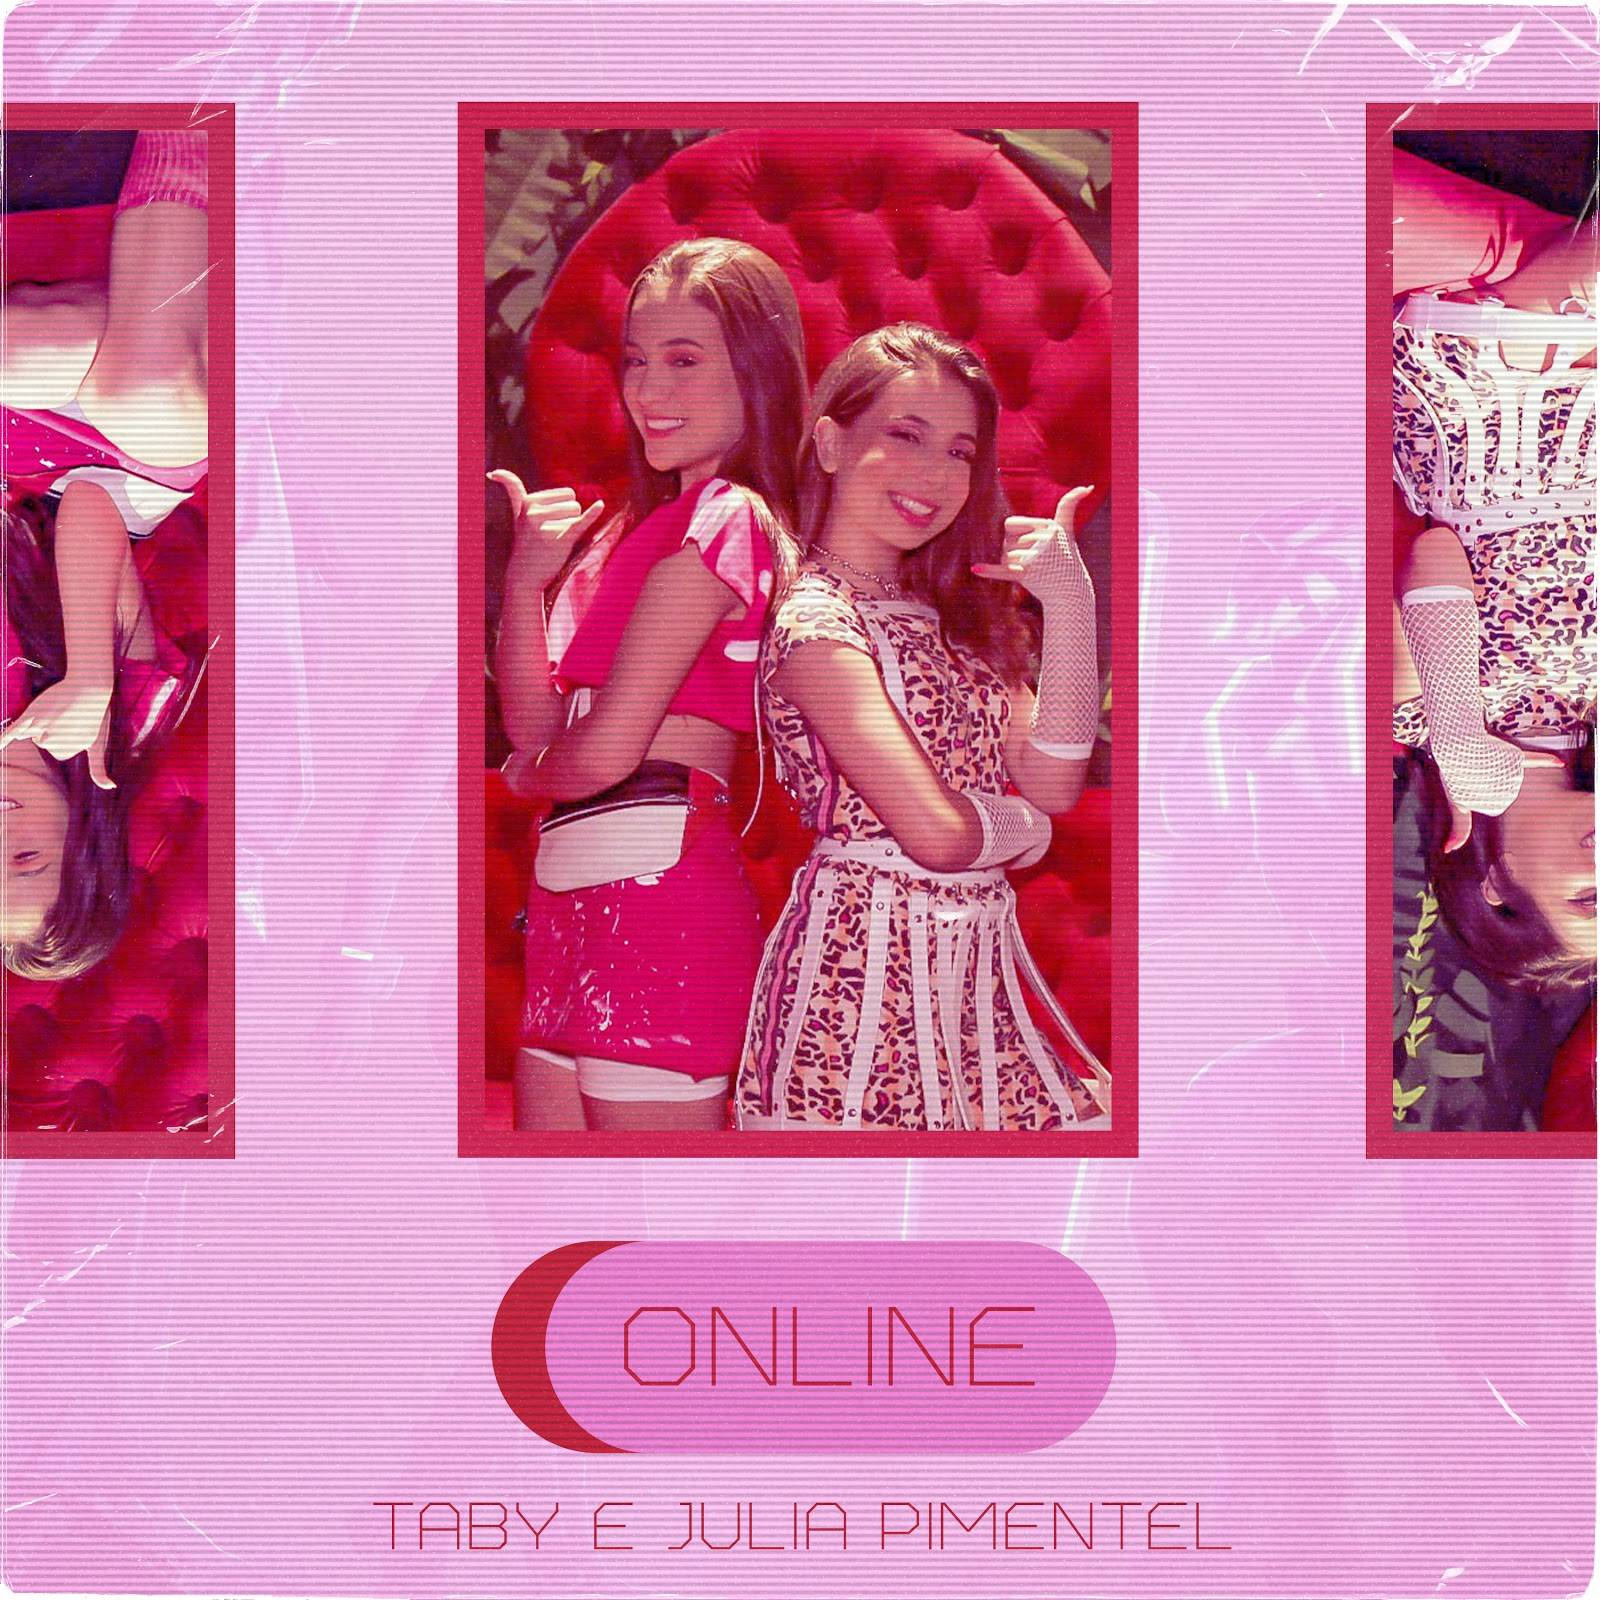 Taby Online Capa final 1